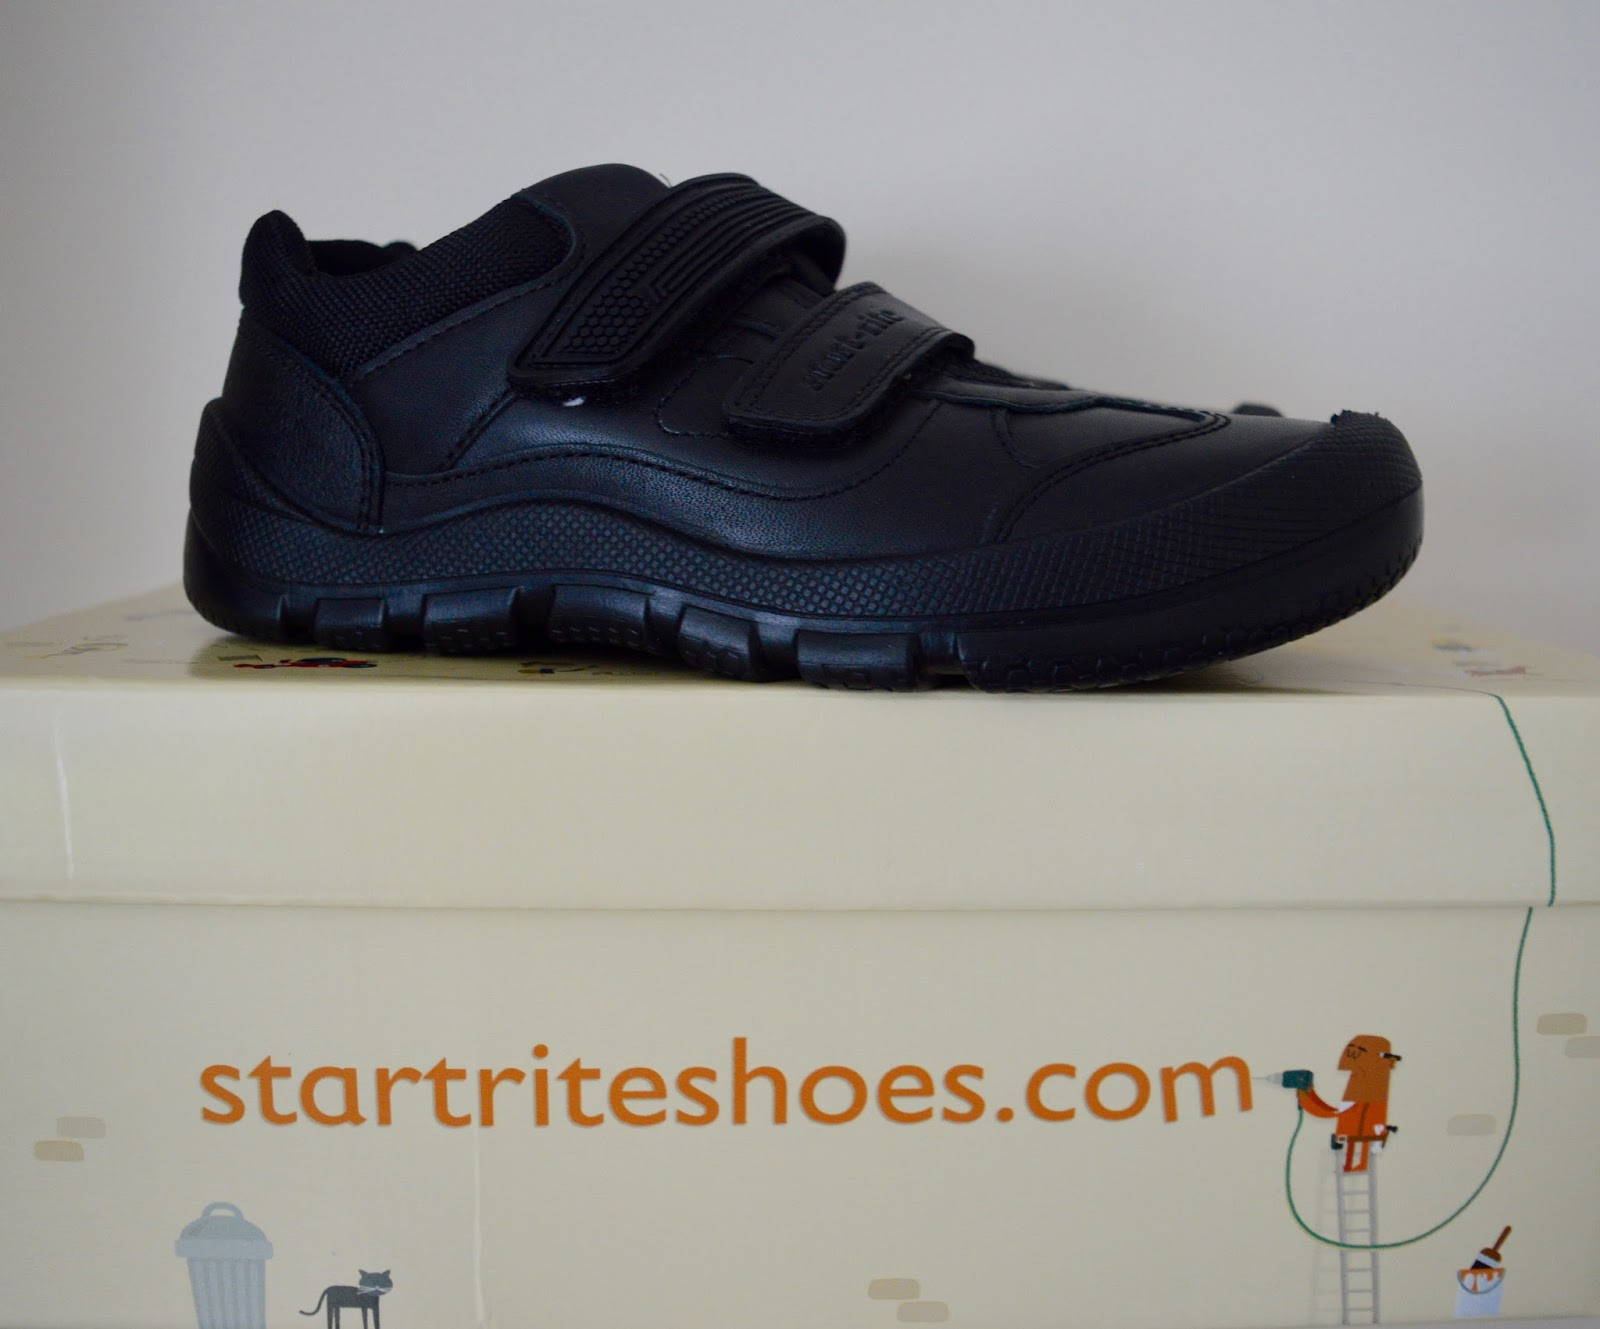 It's time to buy new school shoes - is it worth investing in quality? - Startrite boys' Rhino Shoes Review